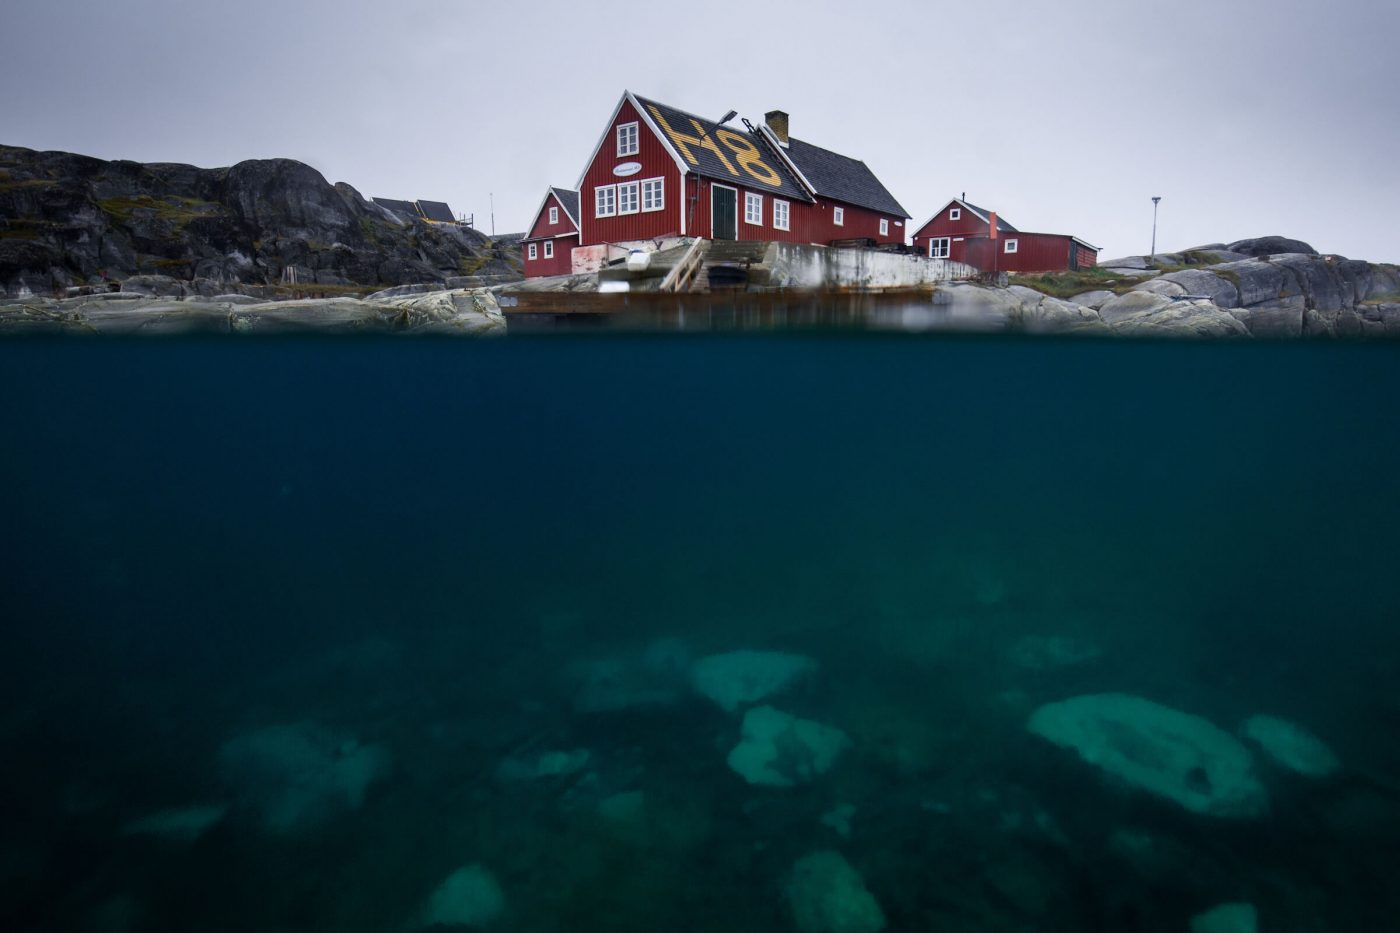 Restaurant H8 in Oqaatsut in the Disko Bay, Greenland. Photo by Mads Pihl - Visit Greenland